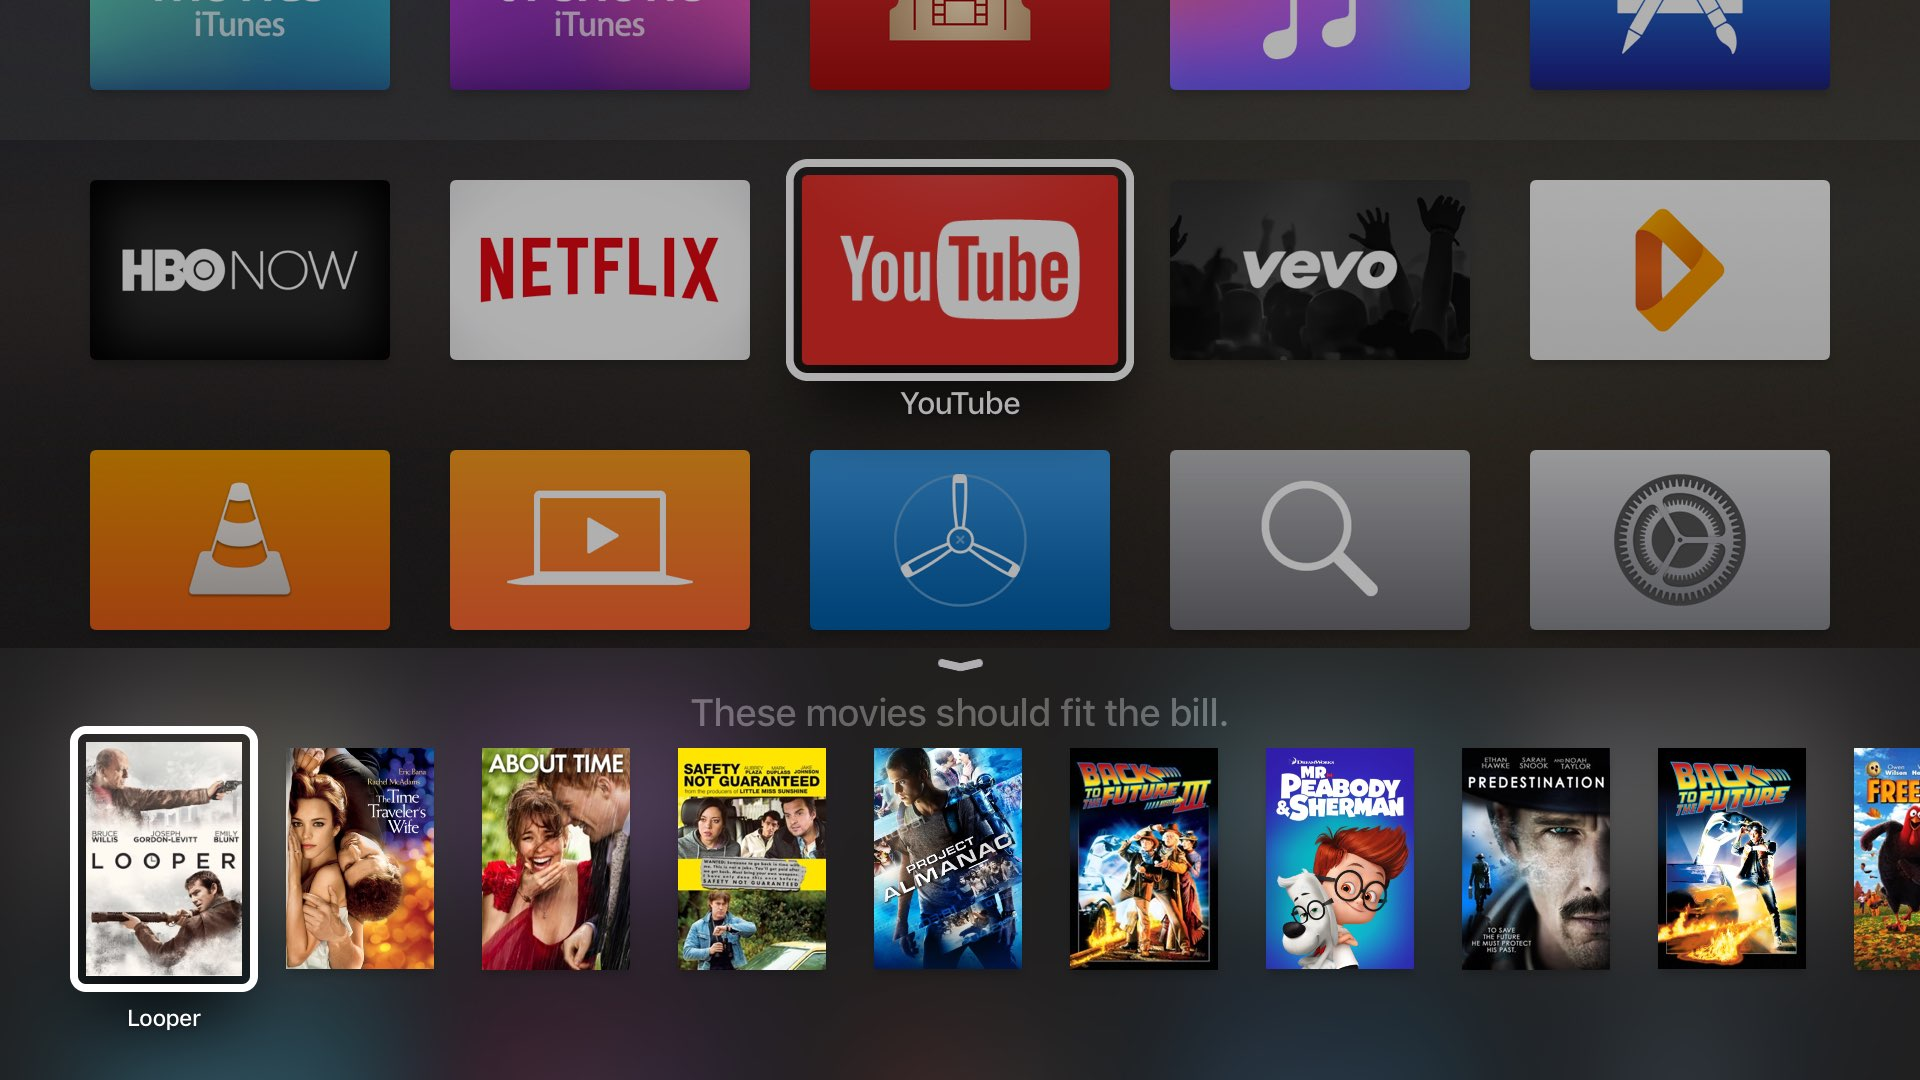 tvOS Siri Movies search Apple TV captura de pantalla 002